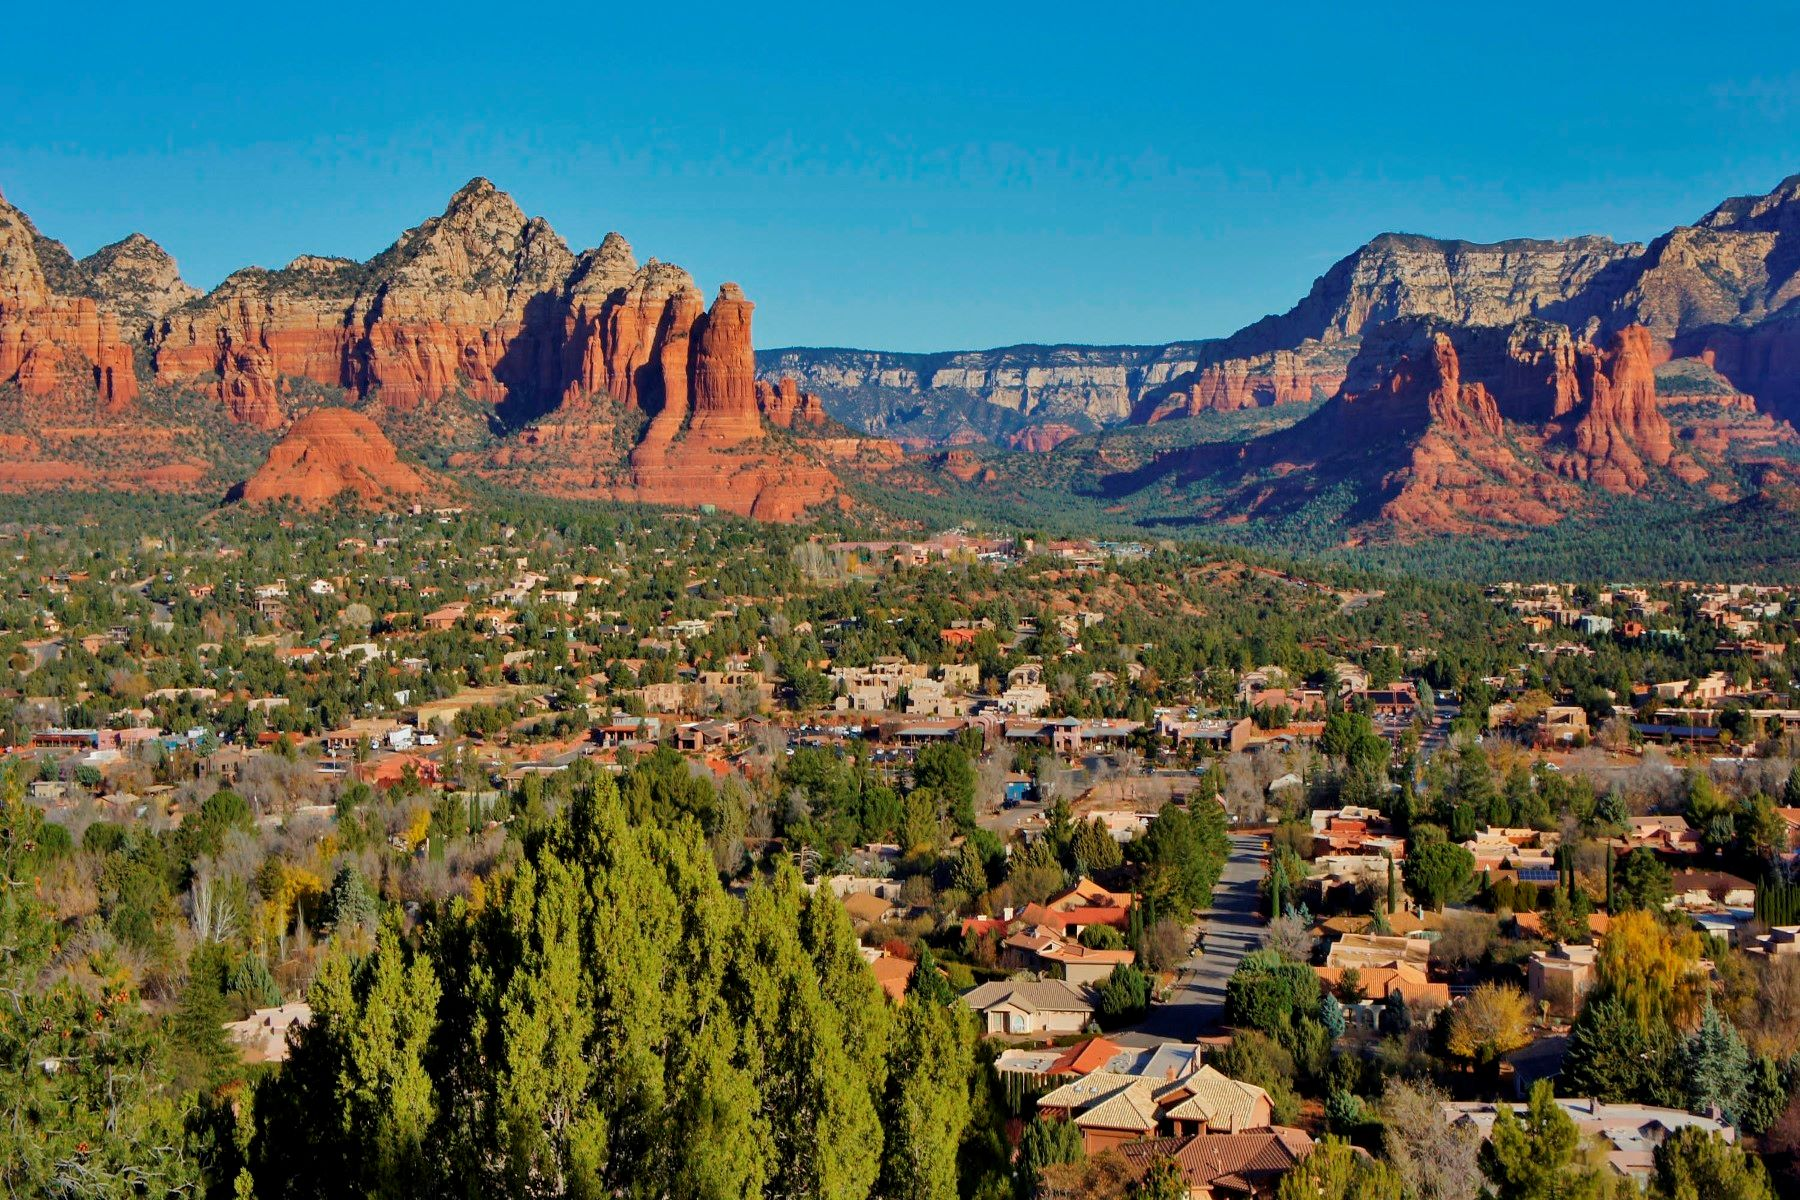 Terreno por un Venta en Rare Offering 815 Airport Rd, Sedona, Arizona, 86336 Estados Unidos